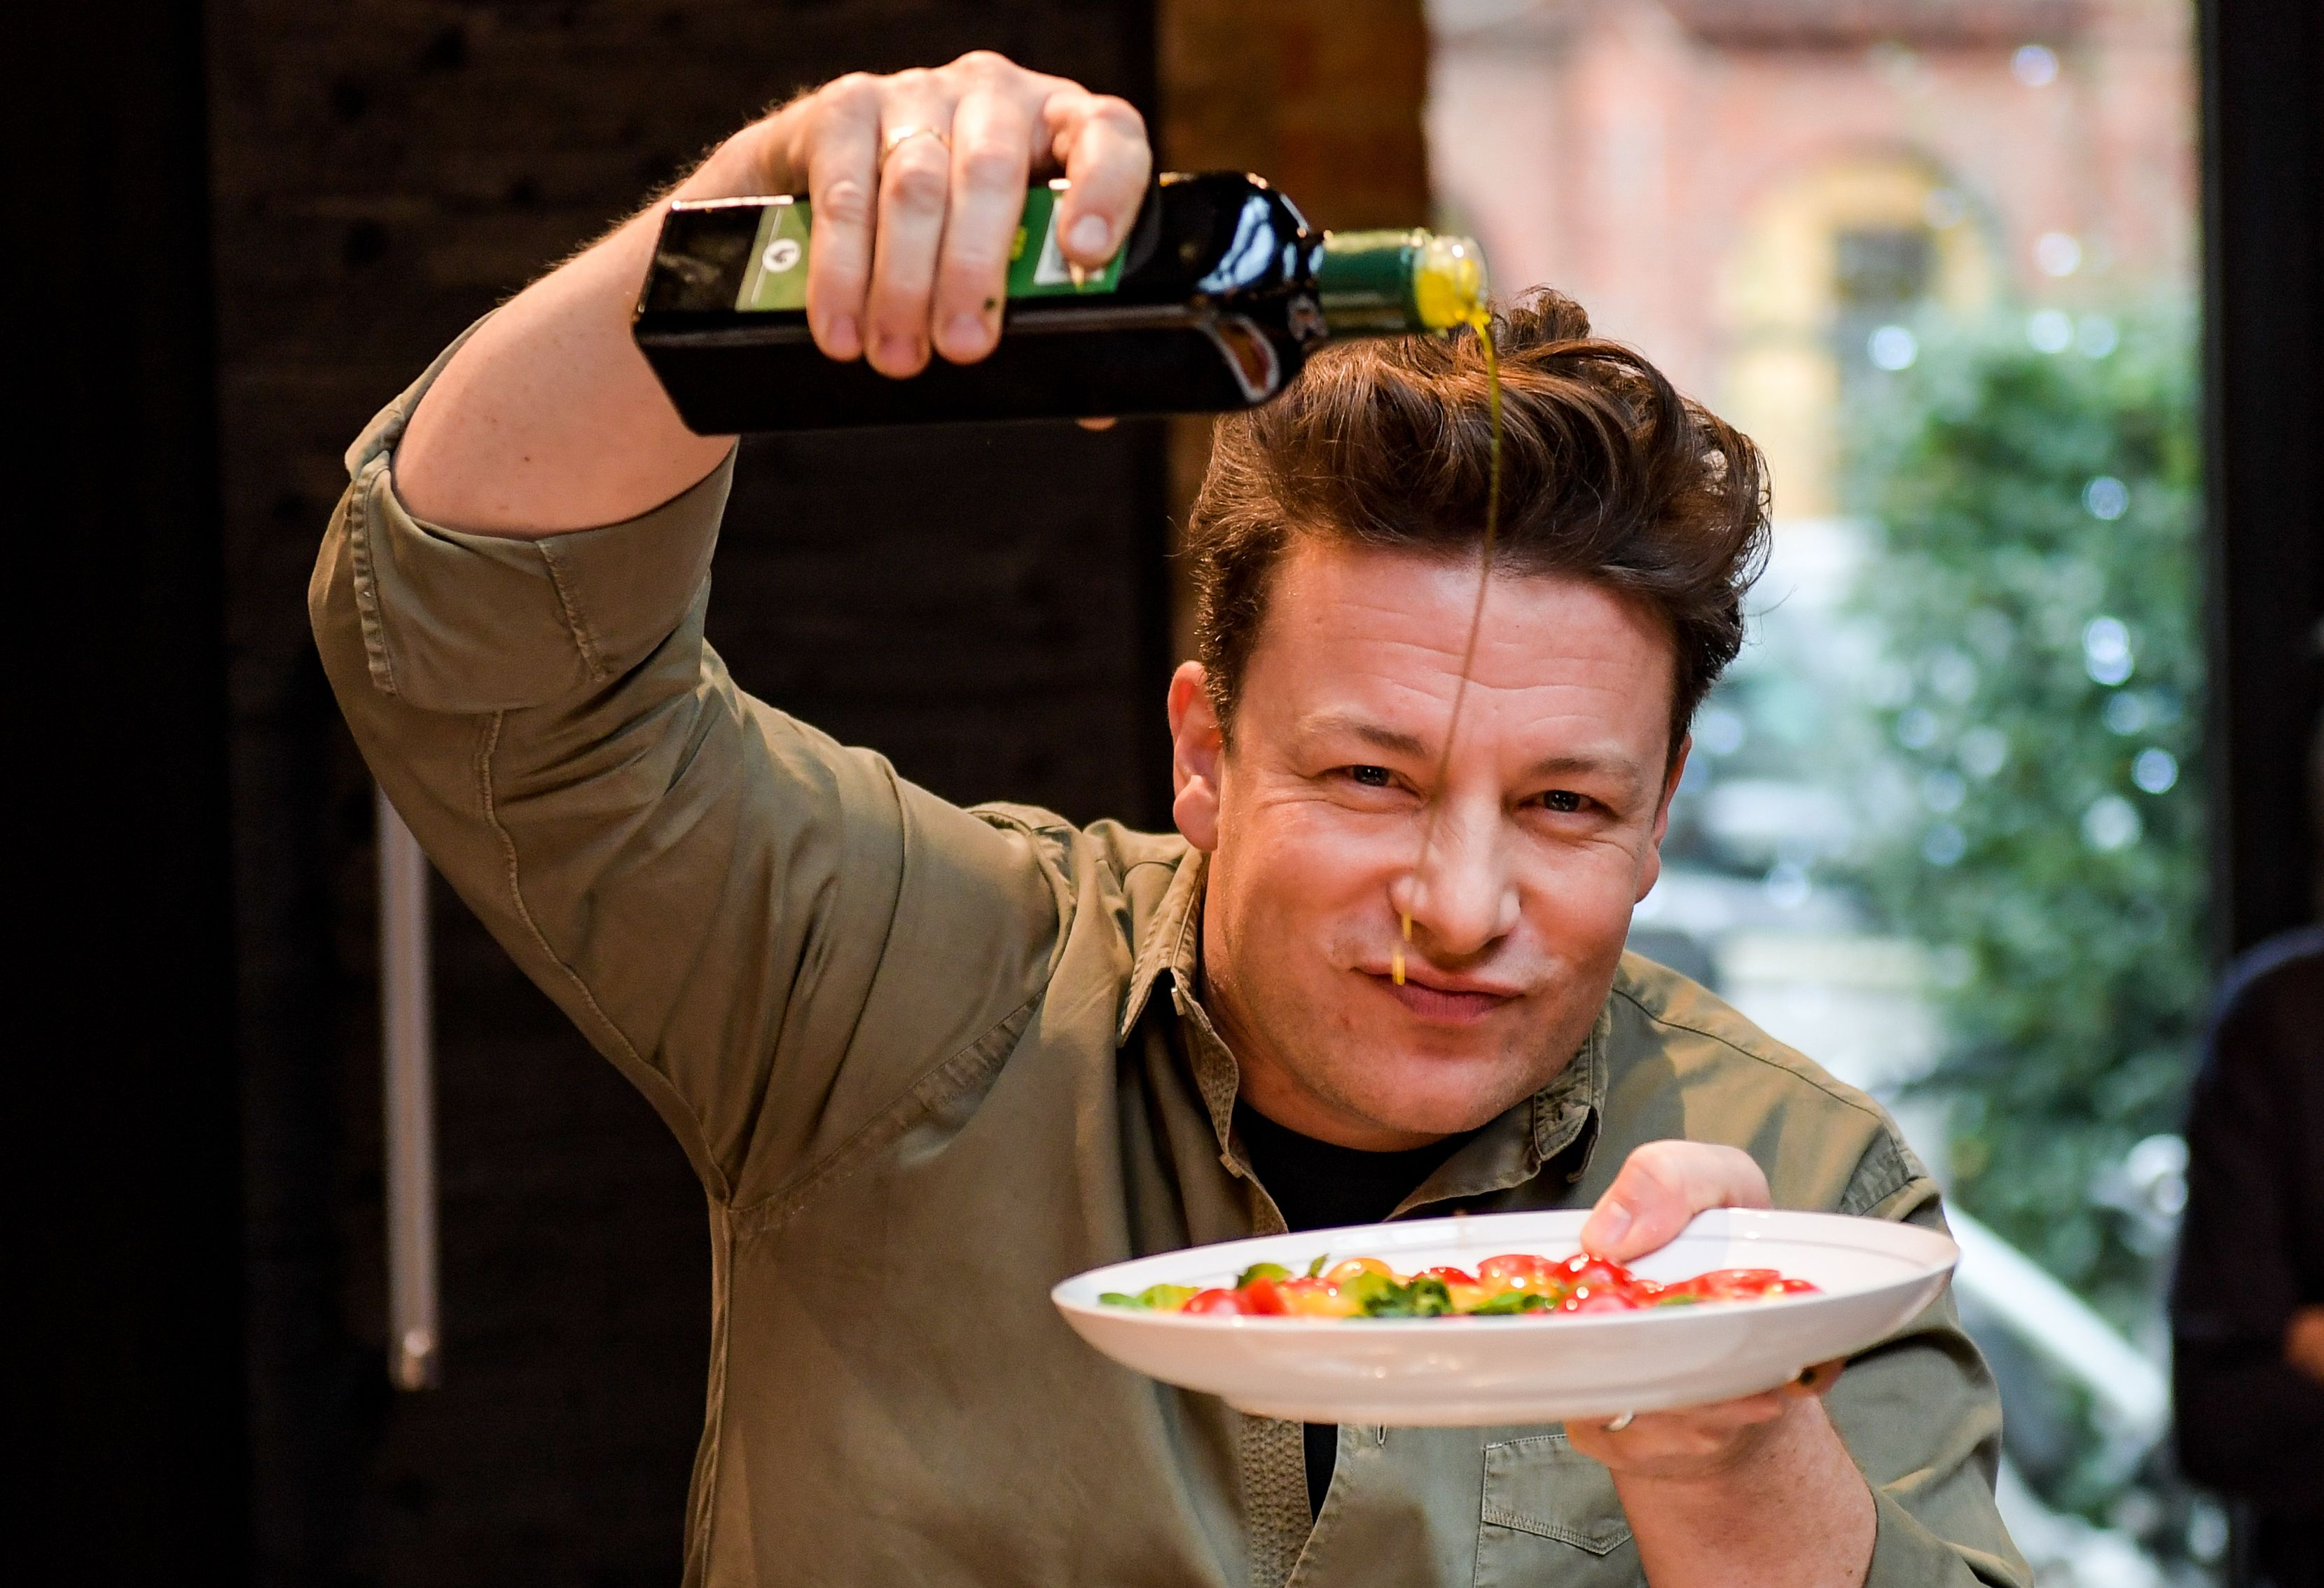 Jamie Oliver Weight Loss Transformation Possible with 2 Changes